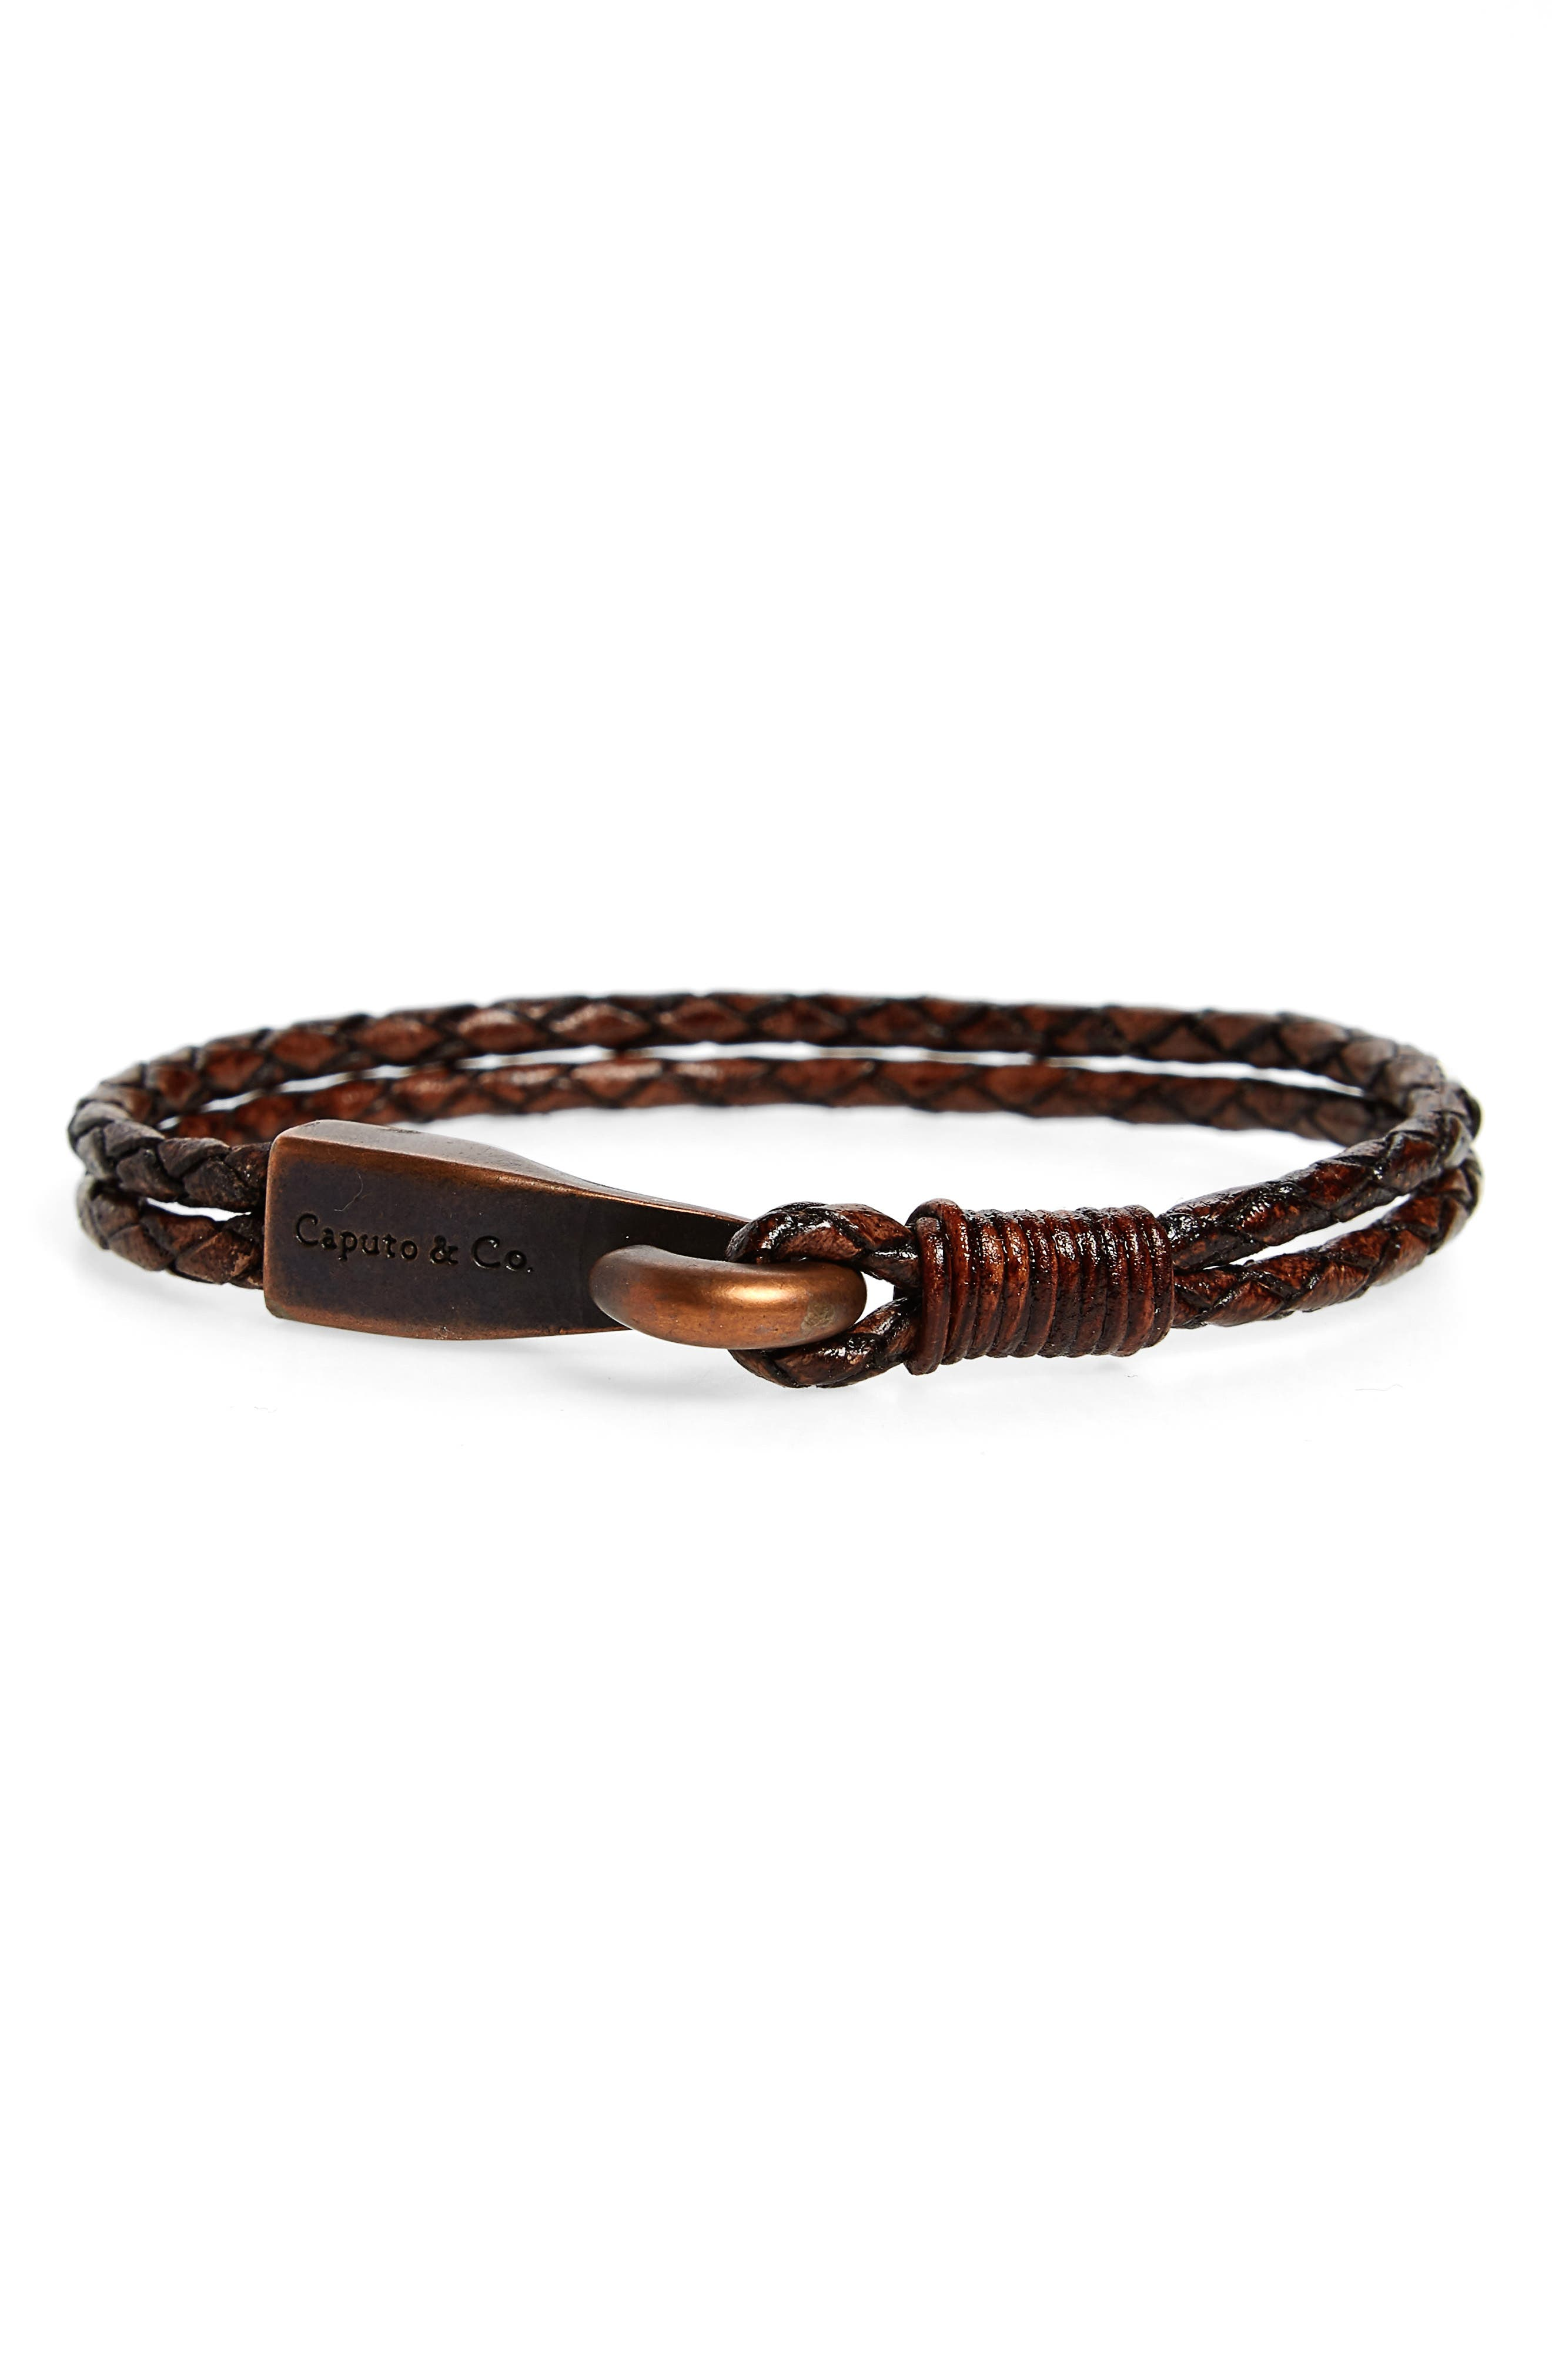 CAPUTO & CO. Leather Bracelet, Main, color, 200